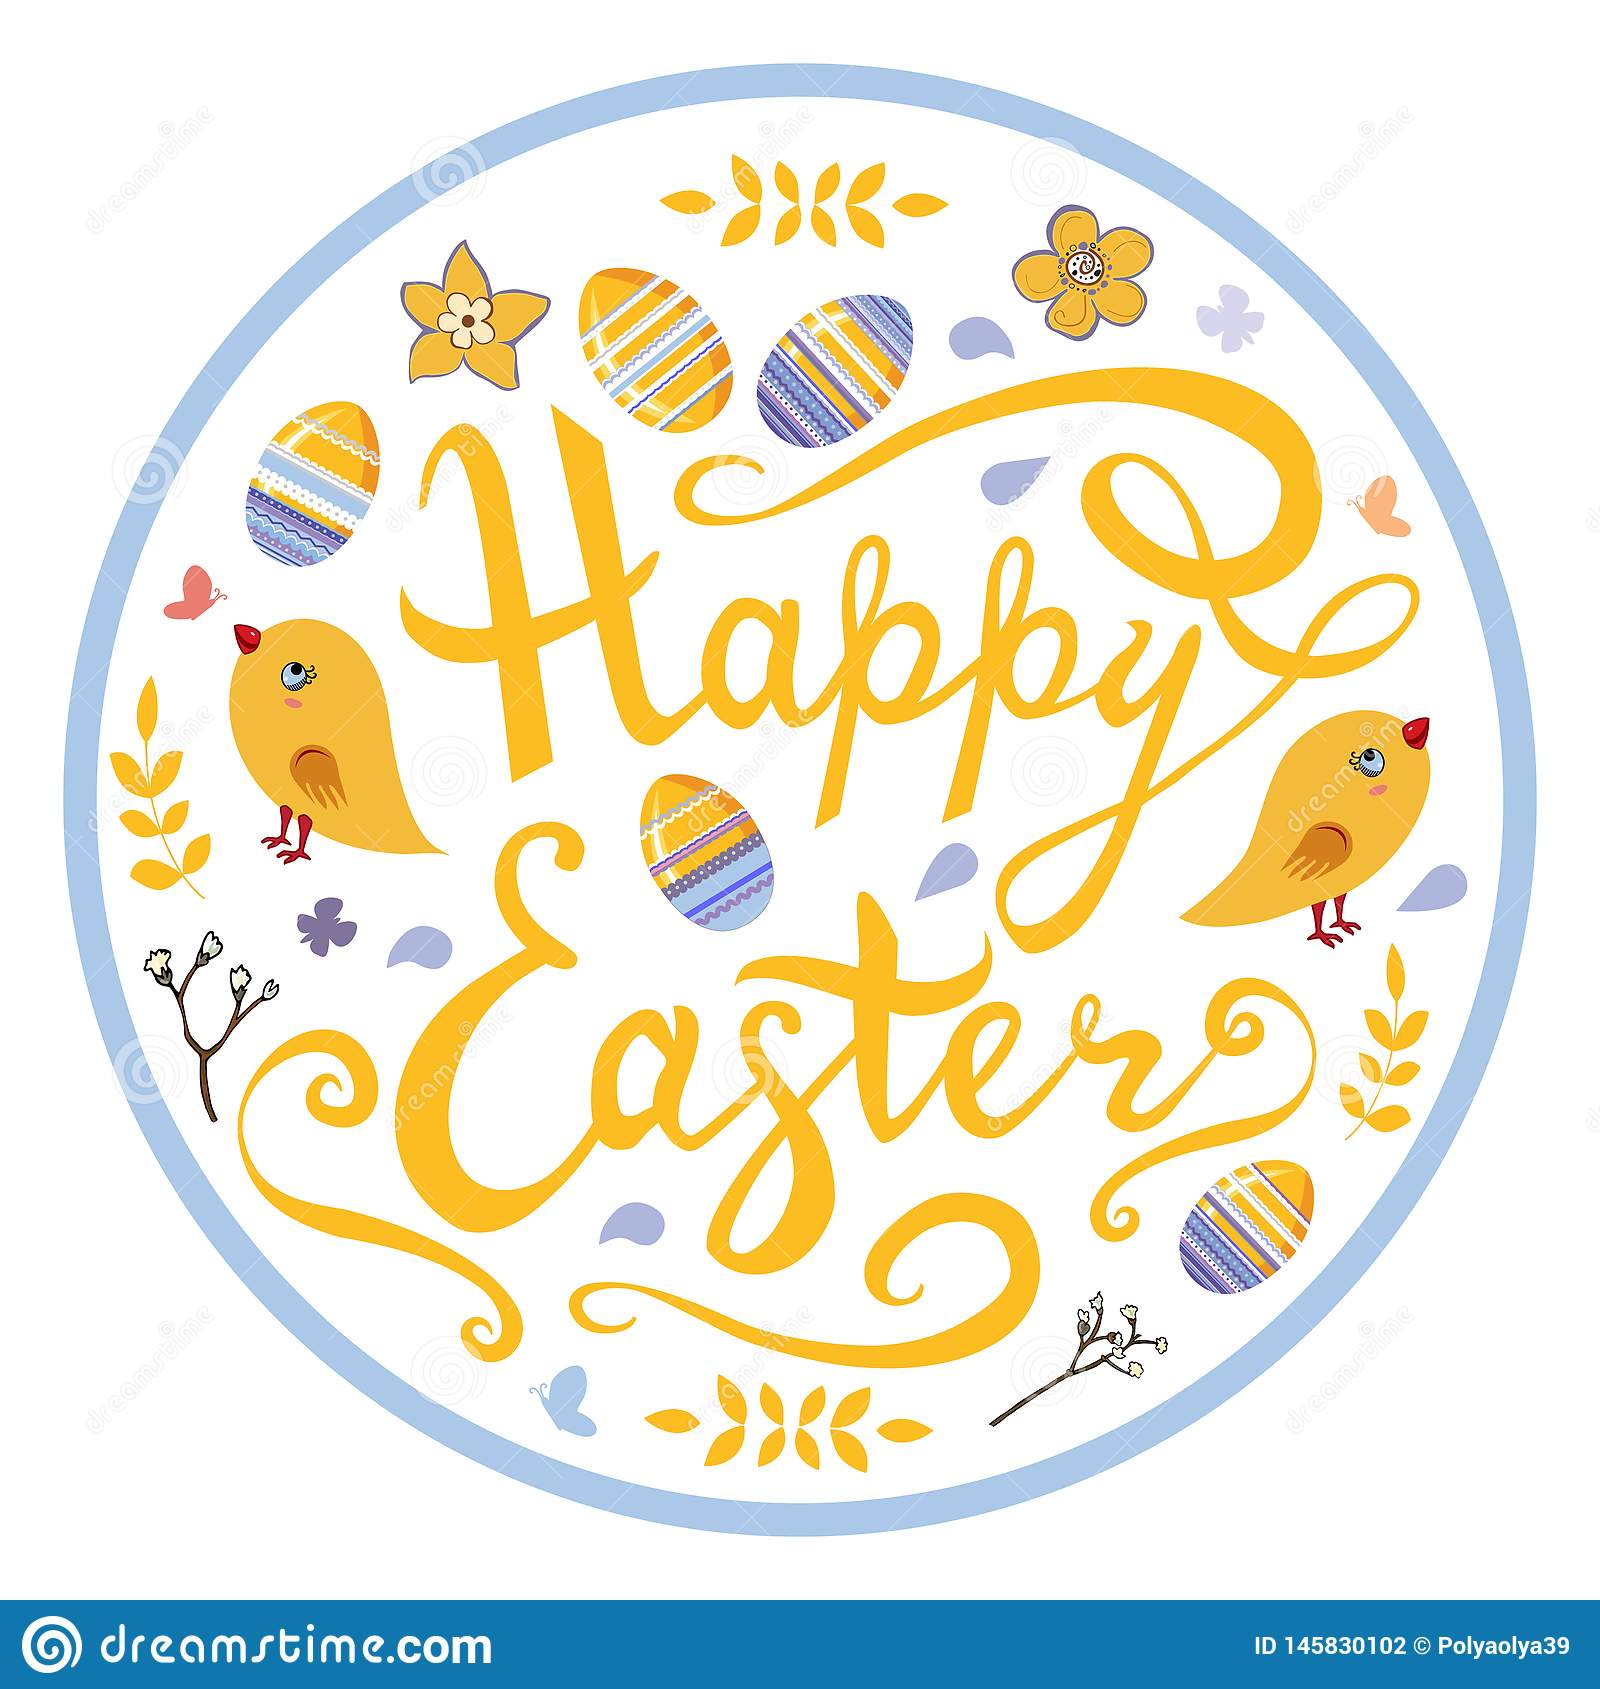 Happy Easter lettering with birds,eggs, herbs and flowers in circle isolated on white background.